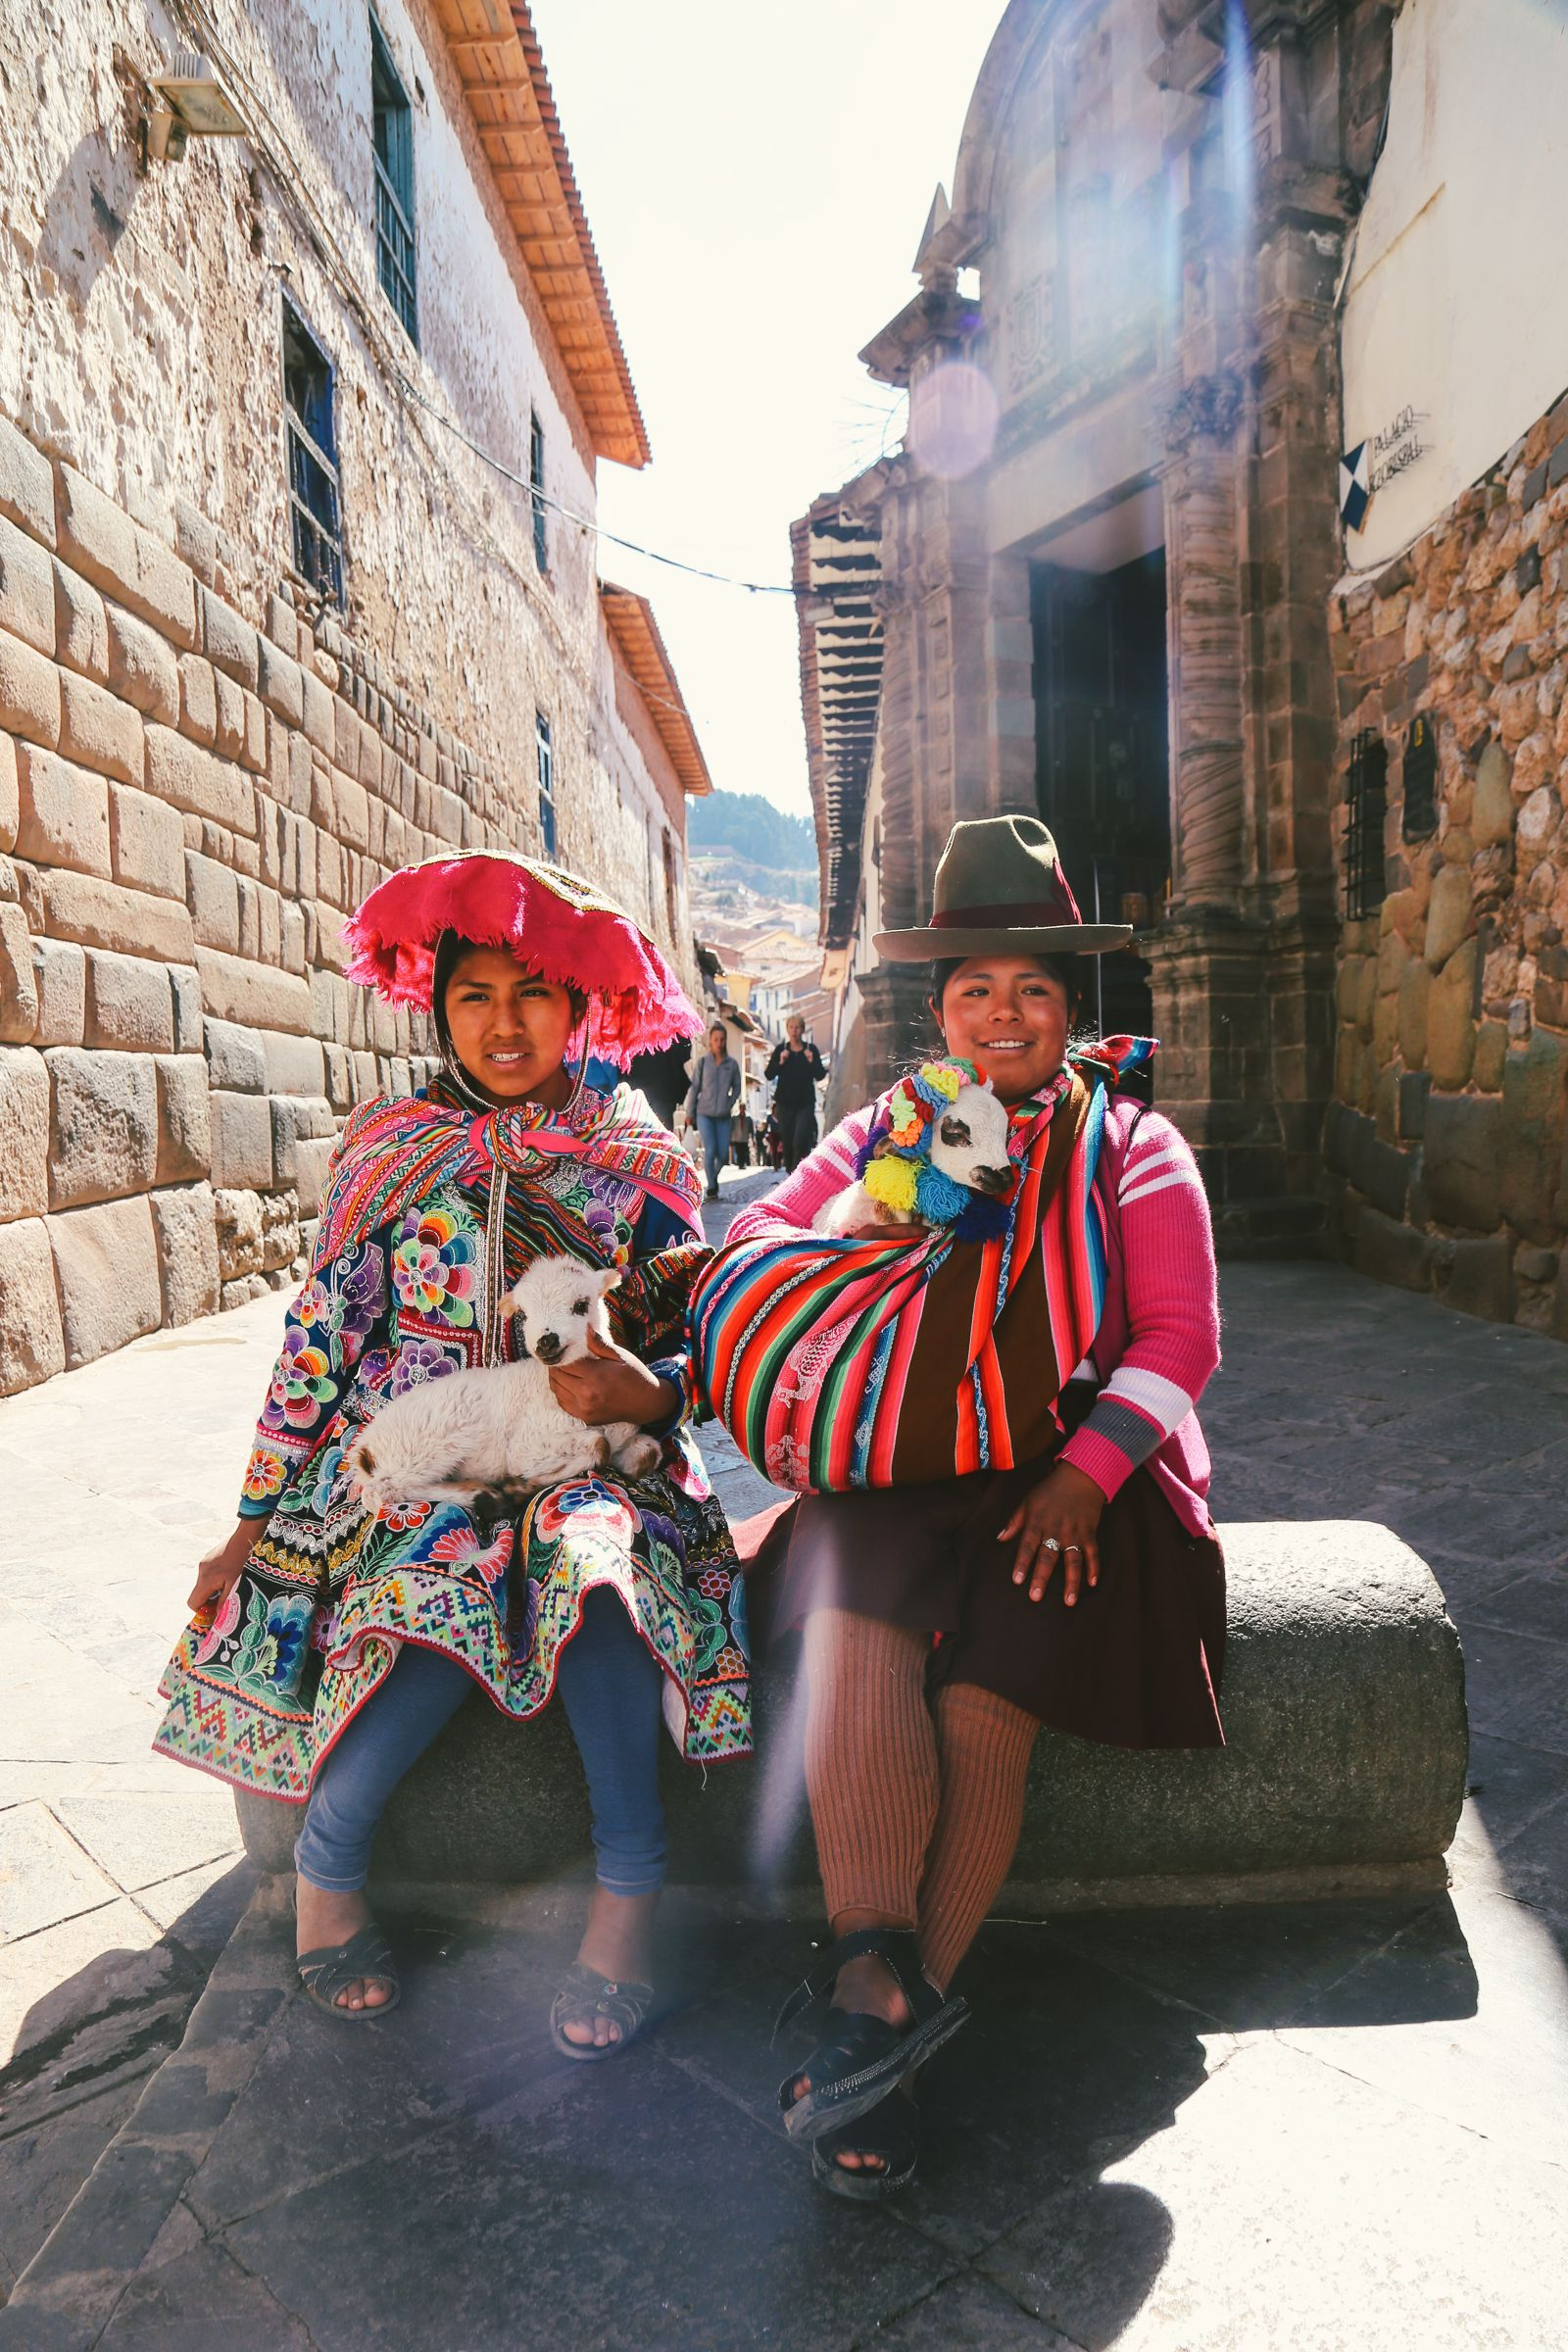 Postcards from Peru - Cusco and Machu Picchu (3)